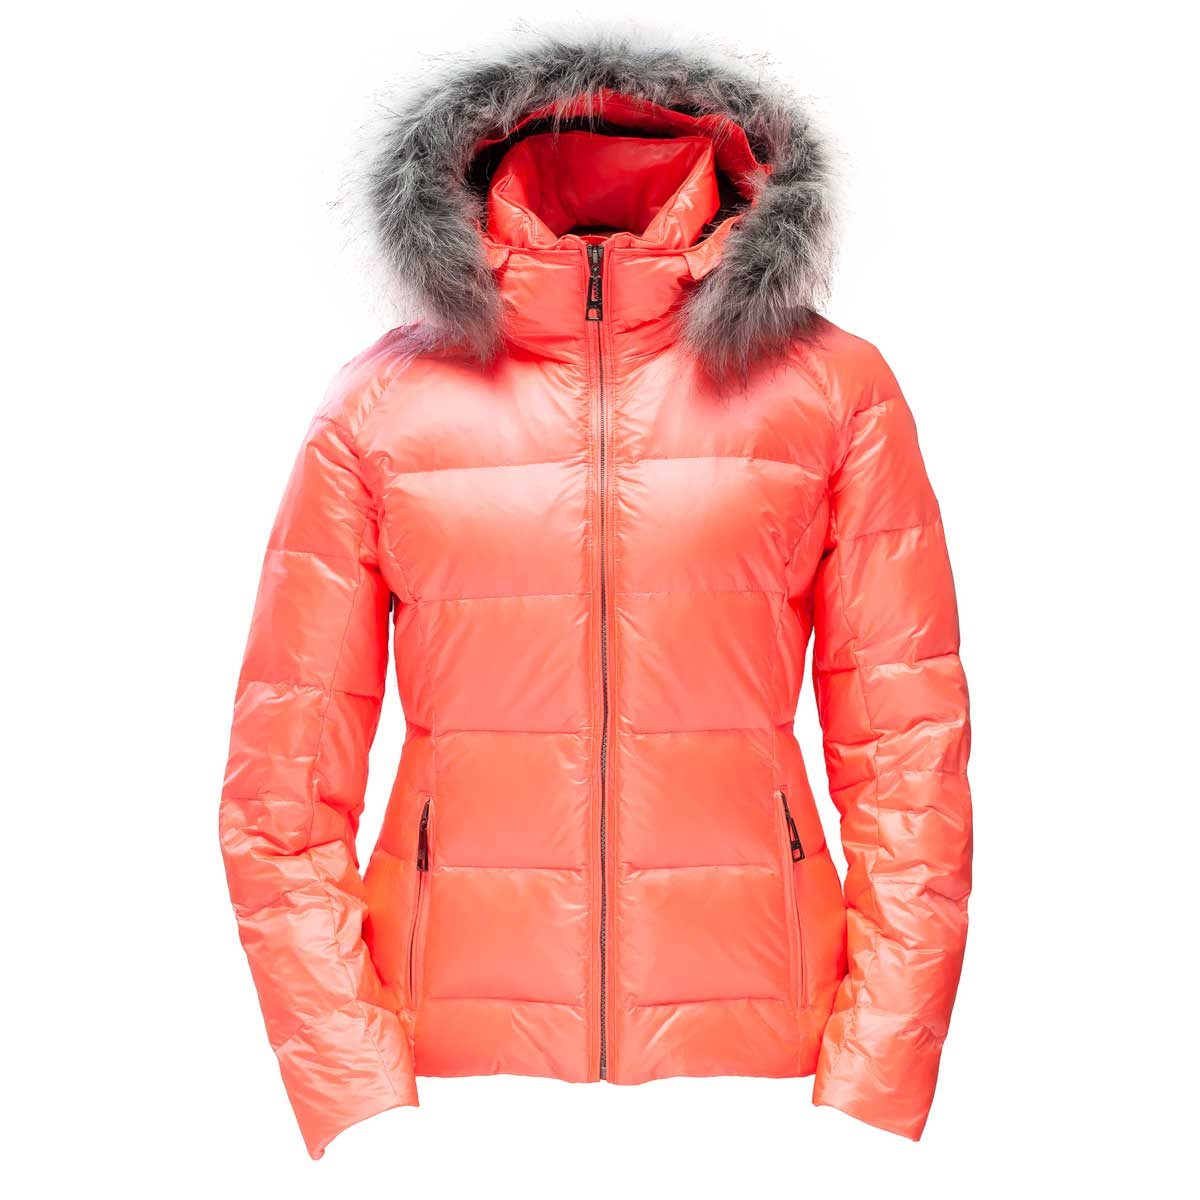 Skea Women's Eve Parka with Faux Fur in Coral and Silver Fox Fur